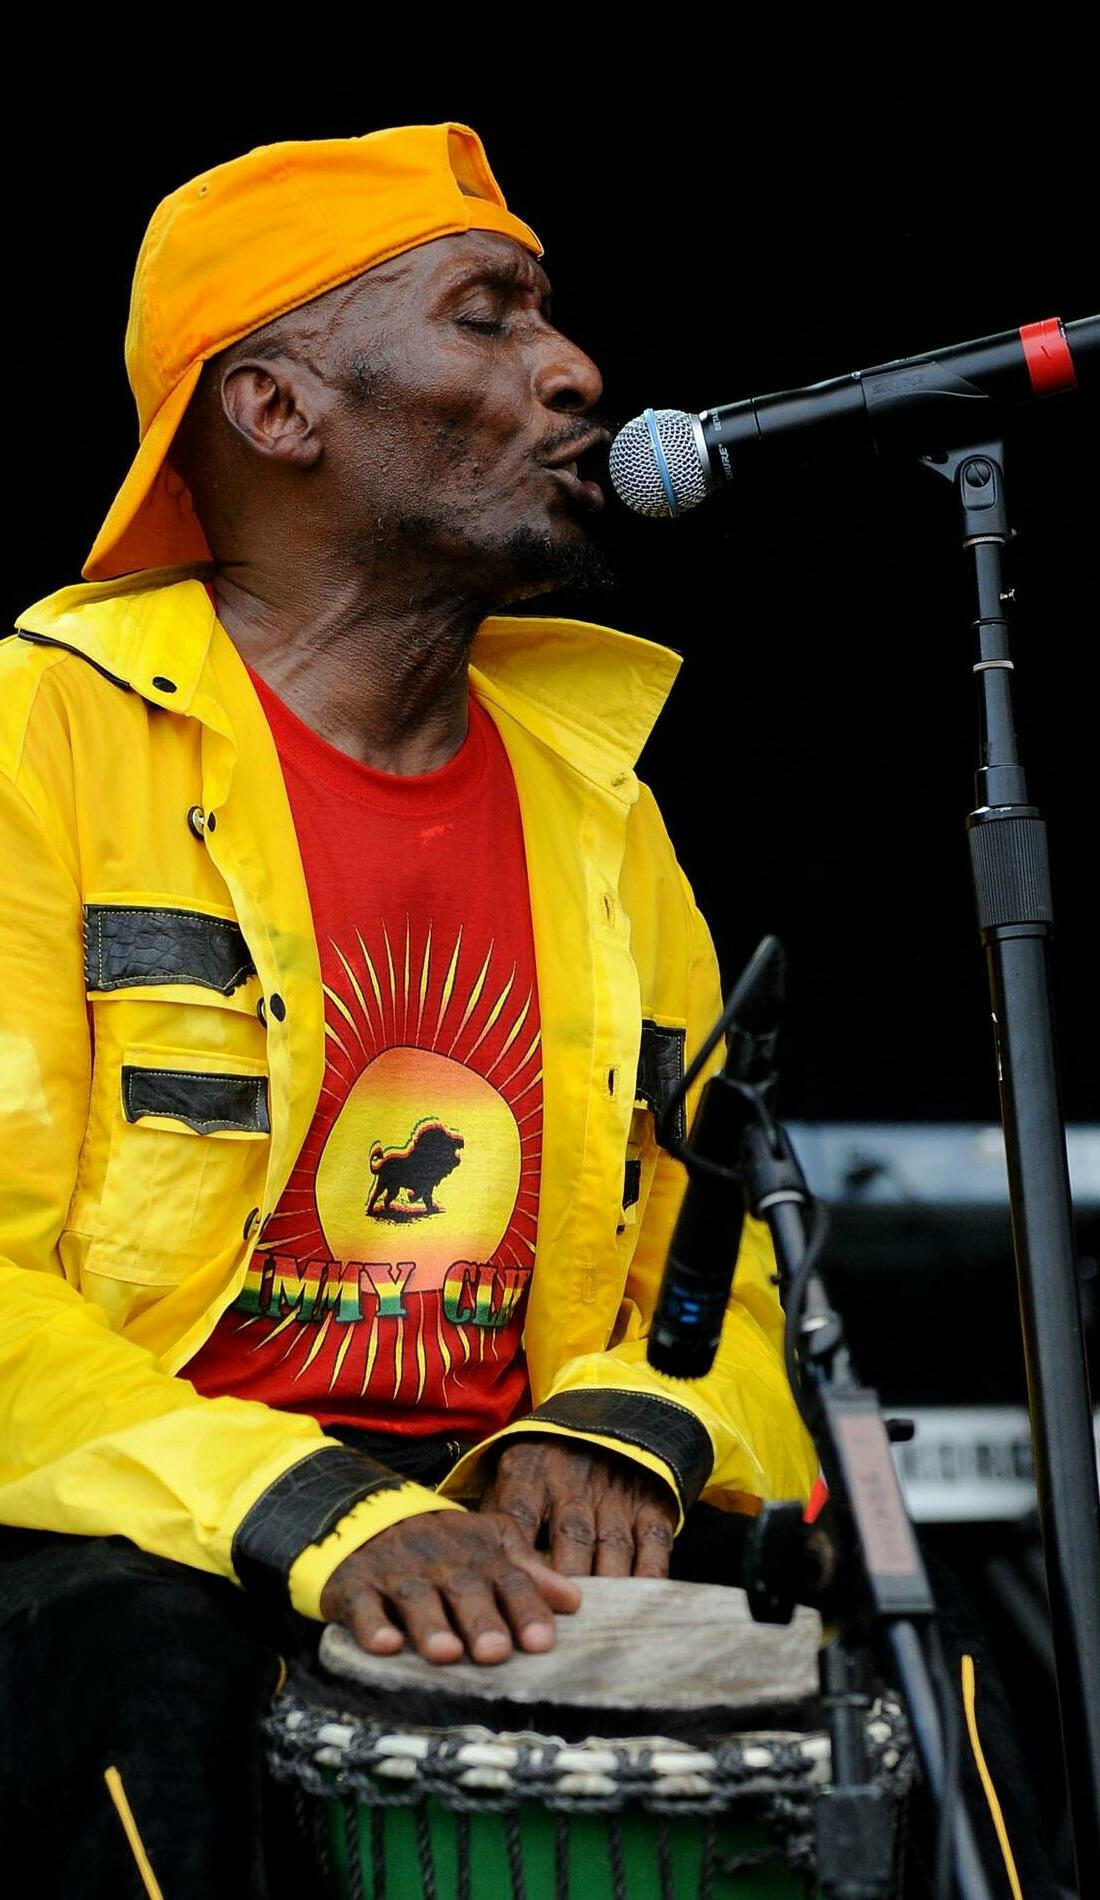 A Jimmy Cliff live event